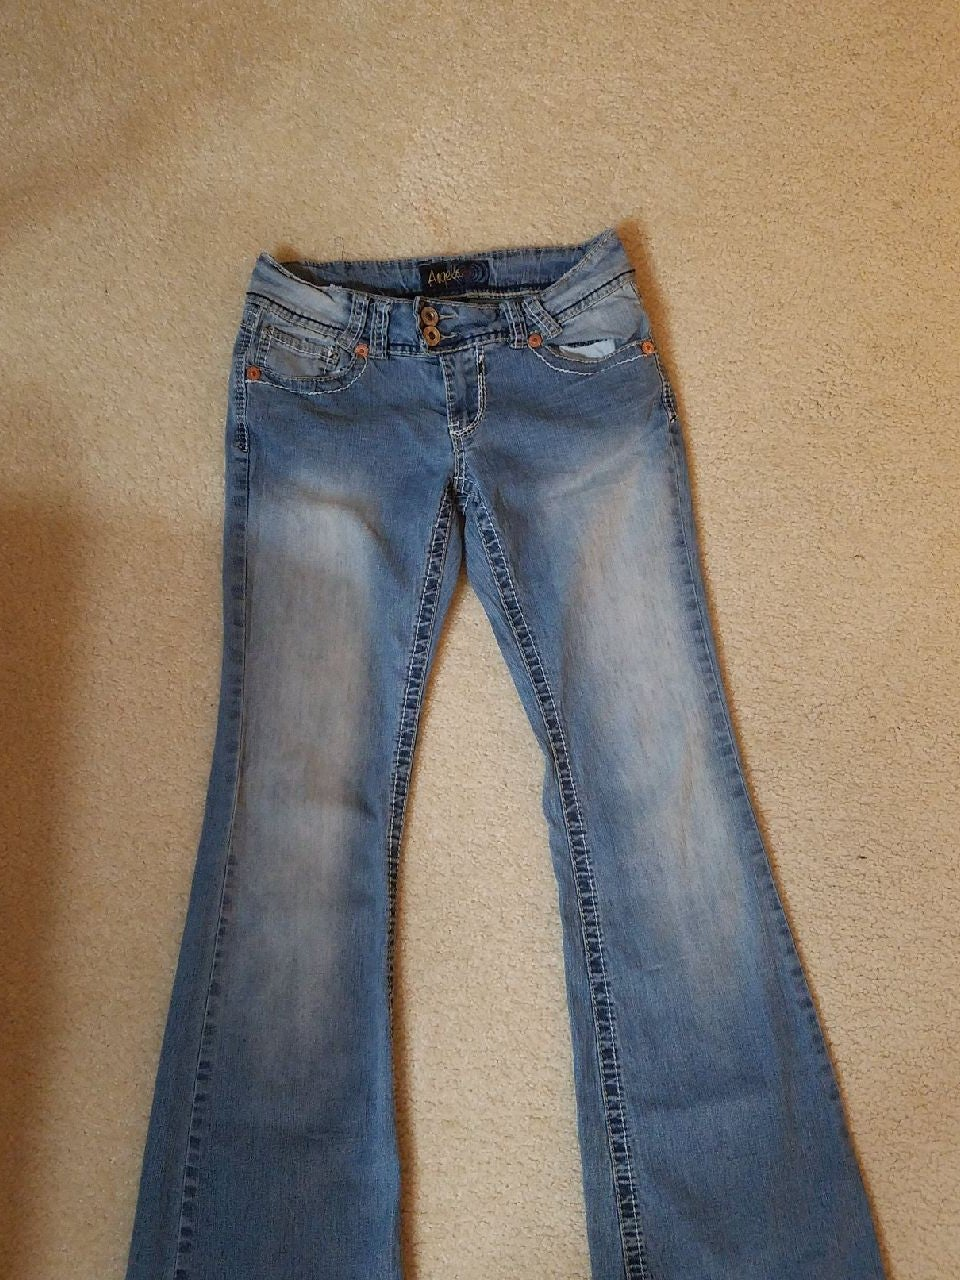 2 Pairs Juniors Jeans Size 9